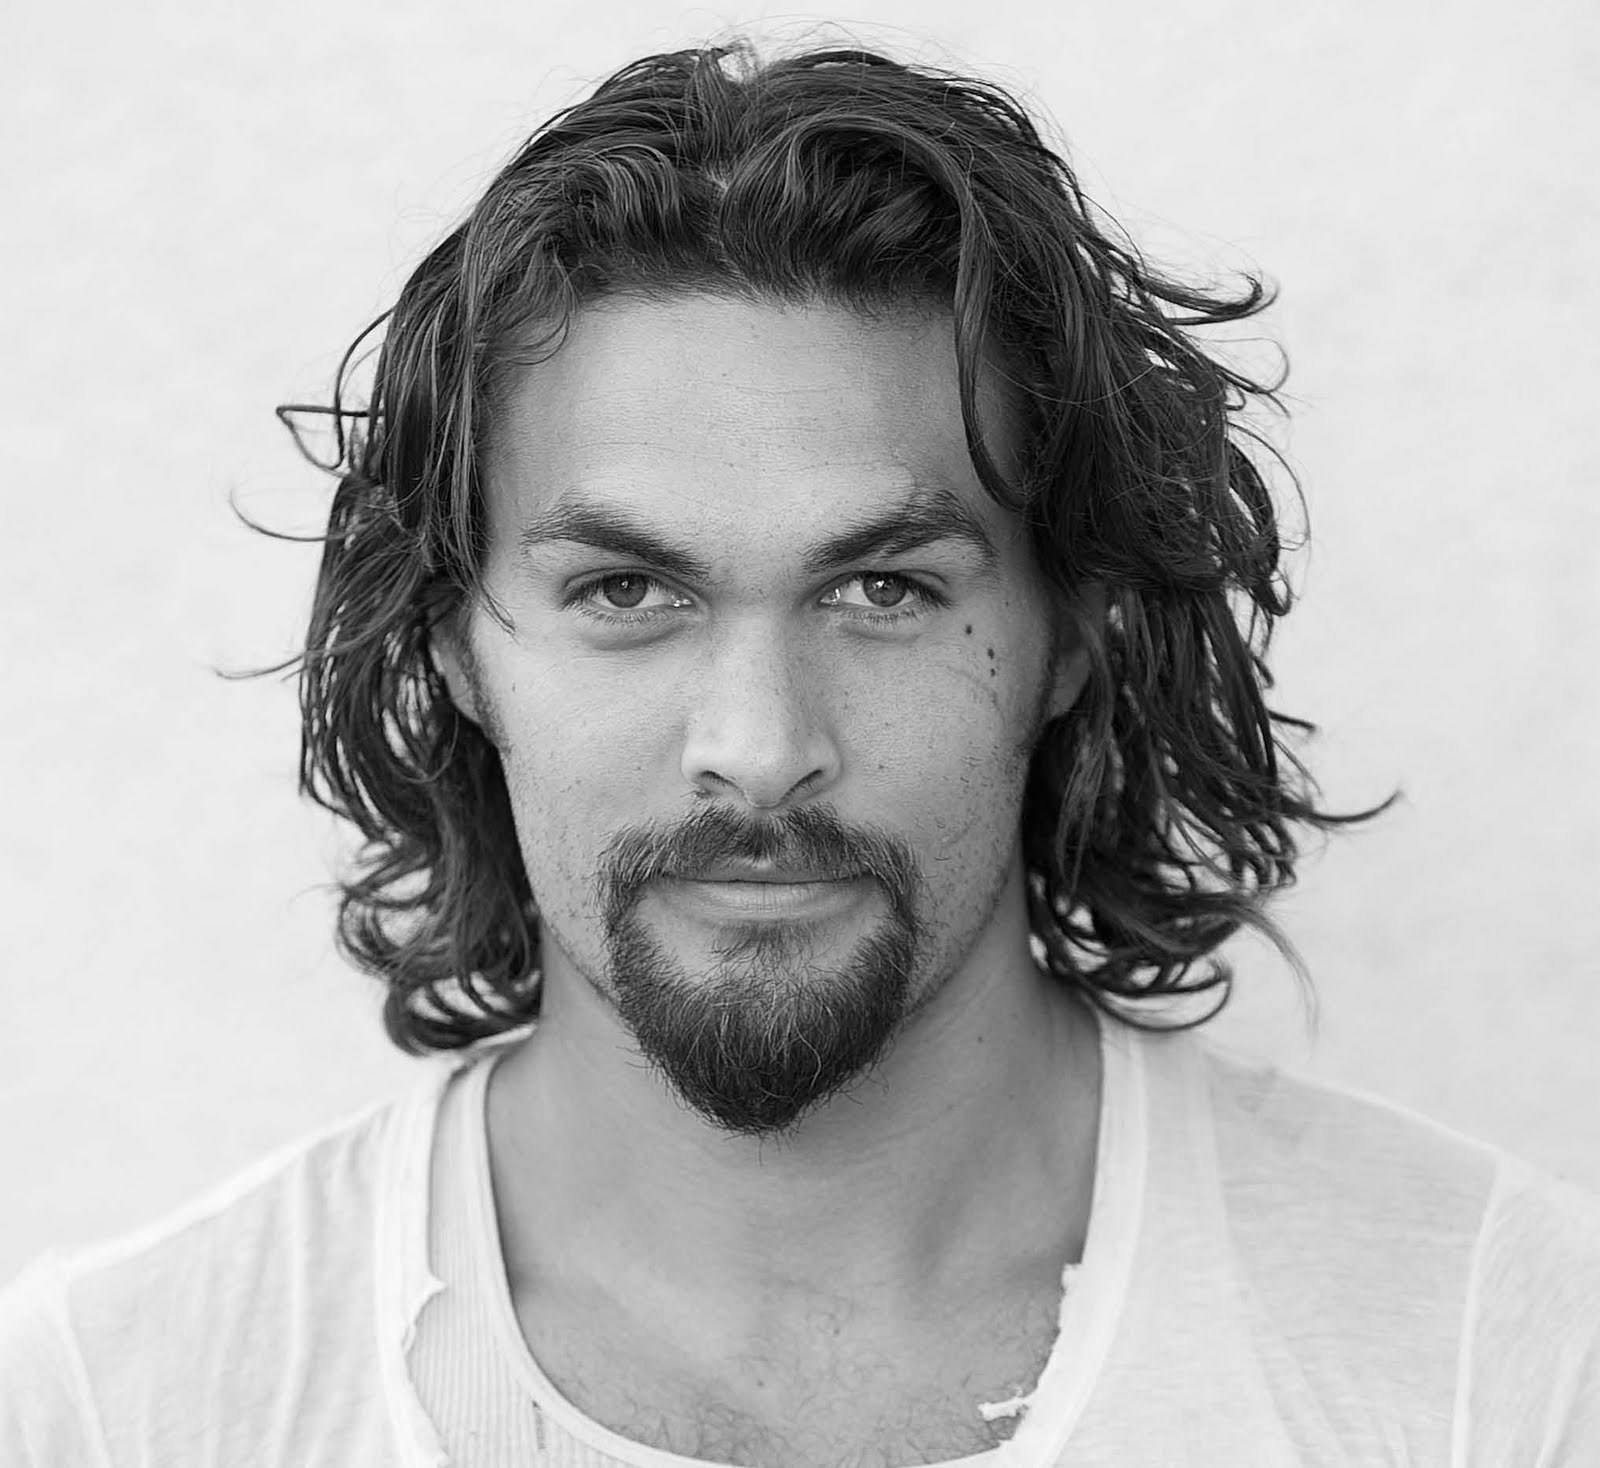 Jason Momoa 2011: Khal Drogo, Game Of Thrones And